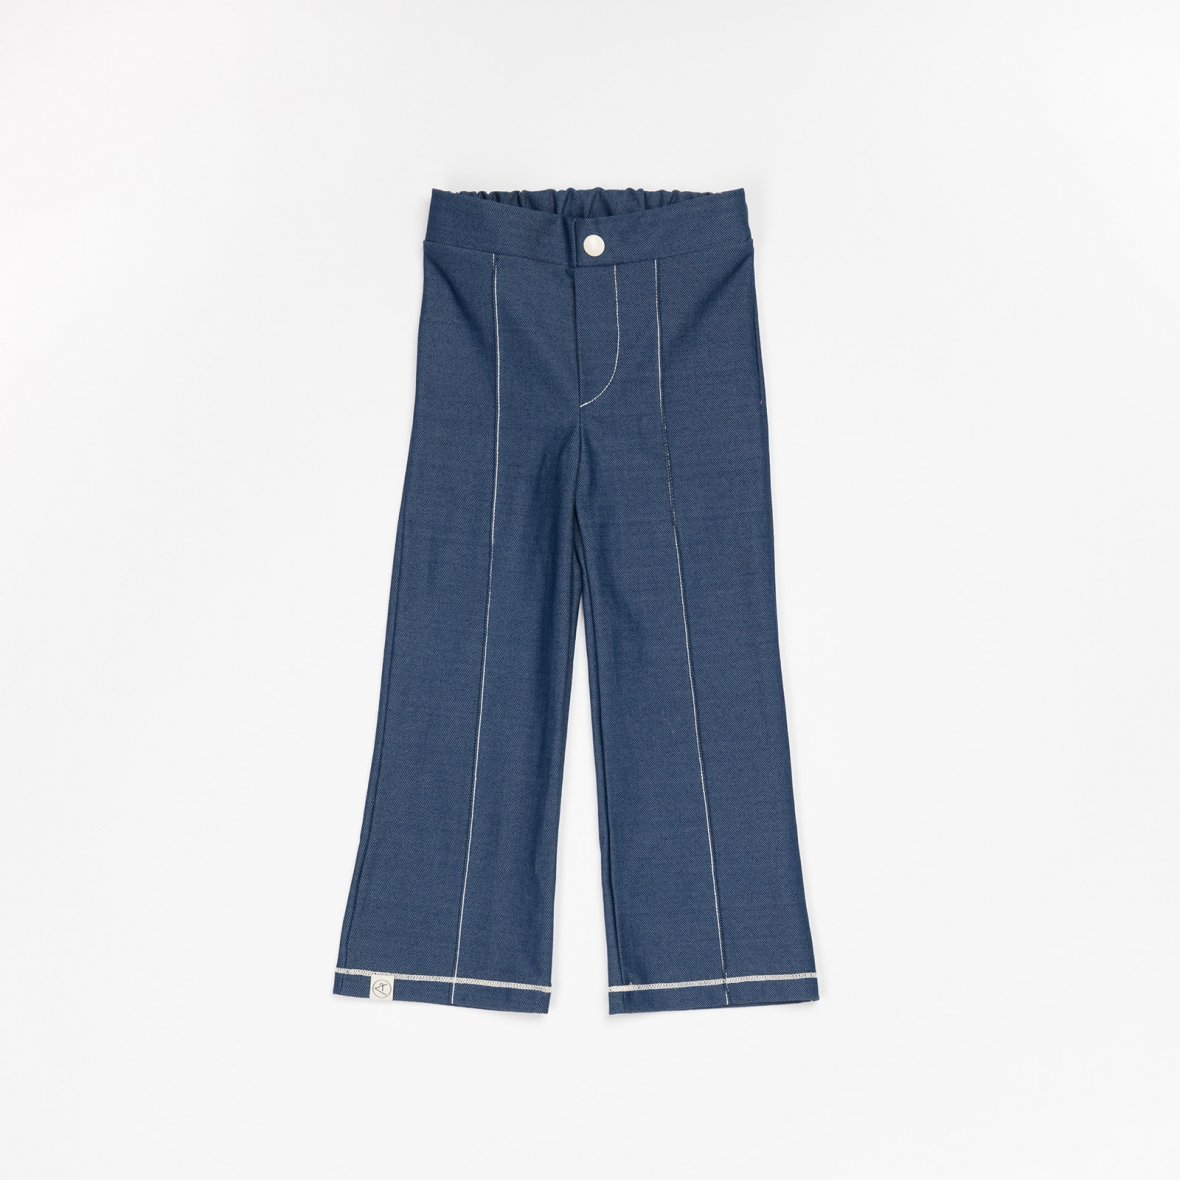 Snorre Box Pants by Alba of Denmark